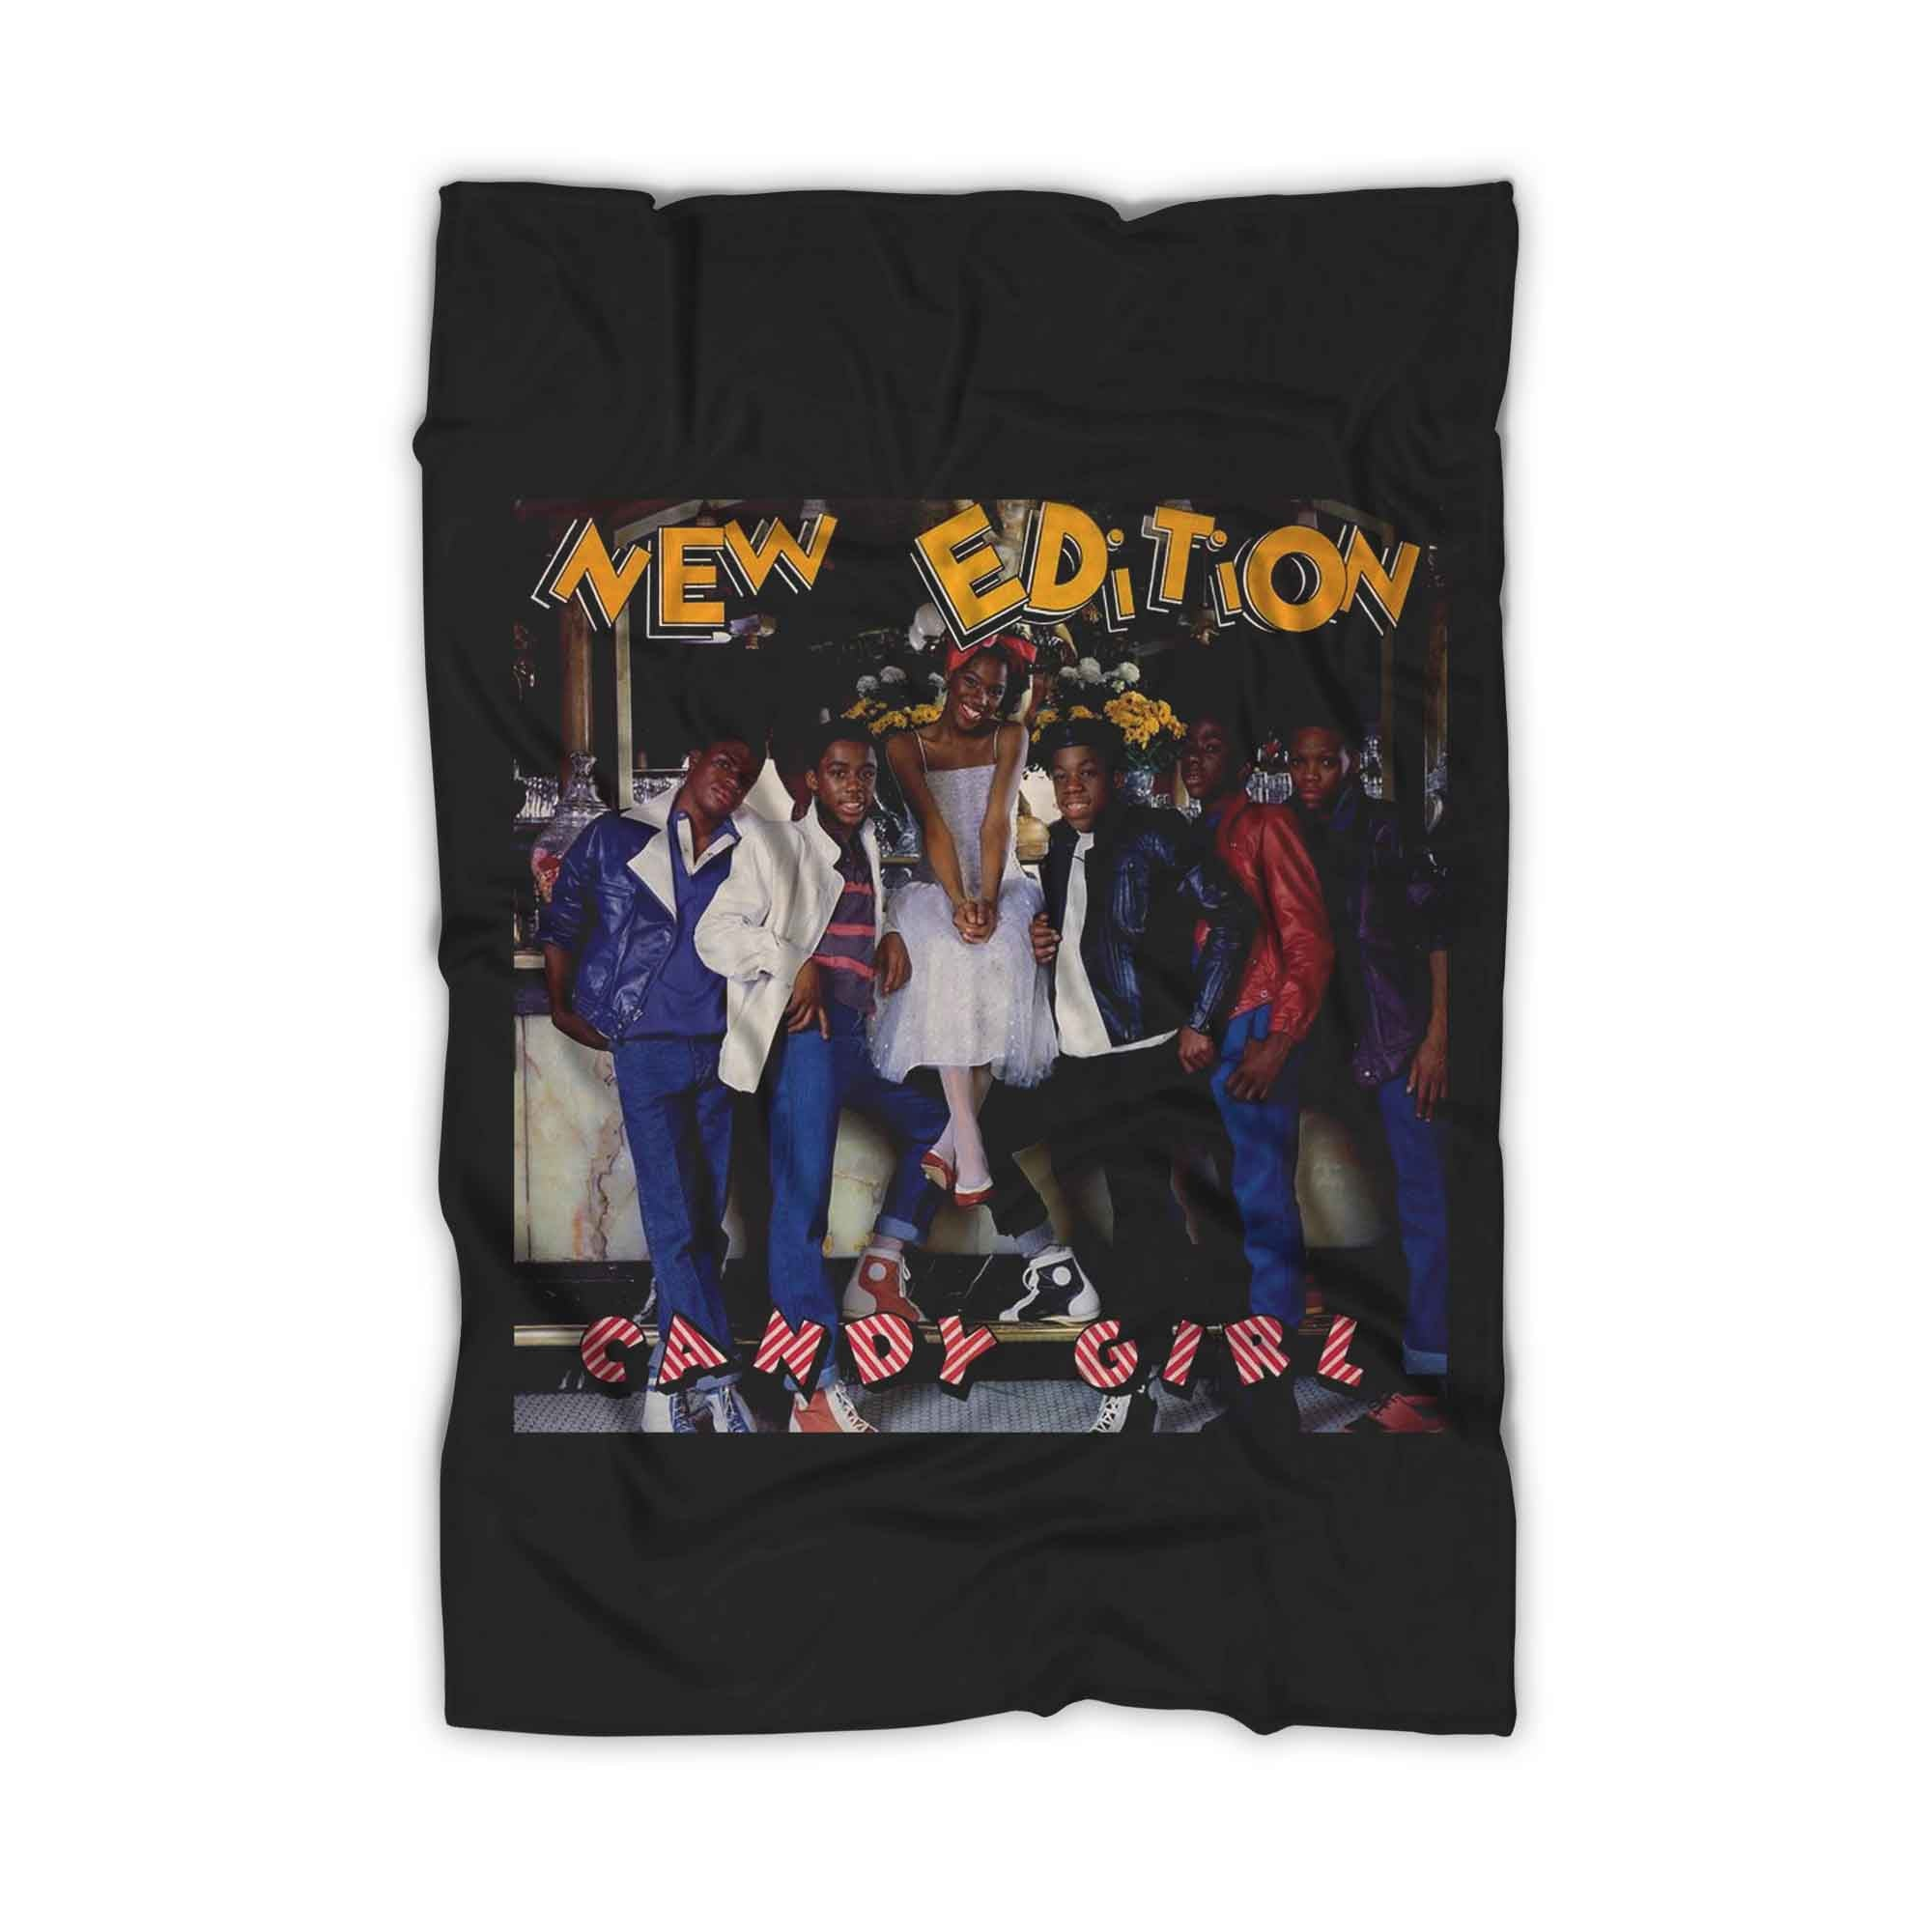 New Edition Heartbreak Candy Girl Bbd Poison Blanket